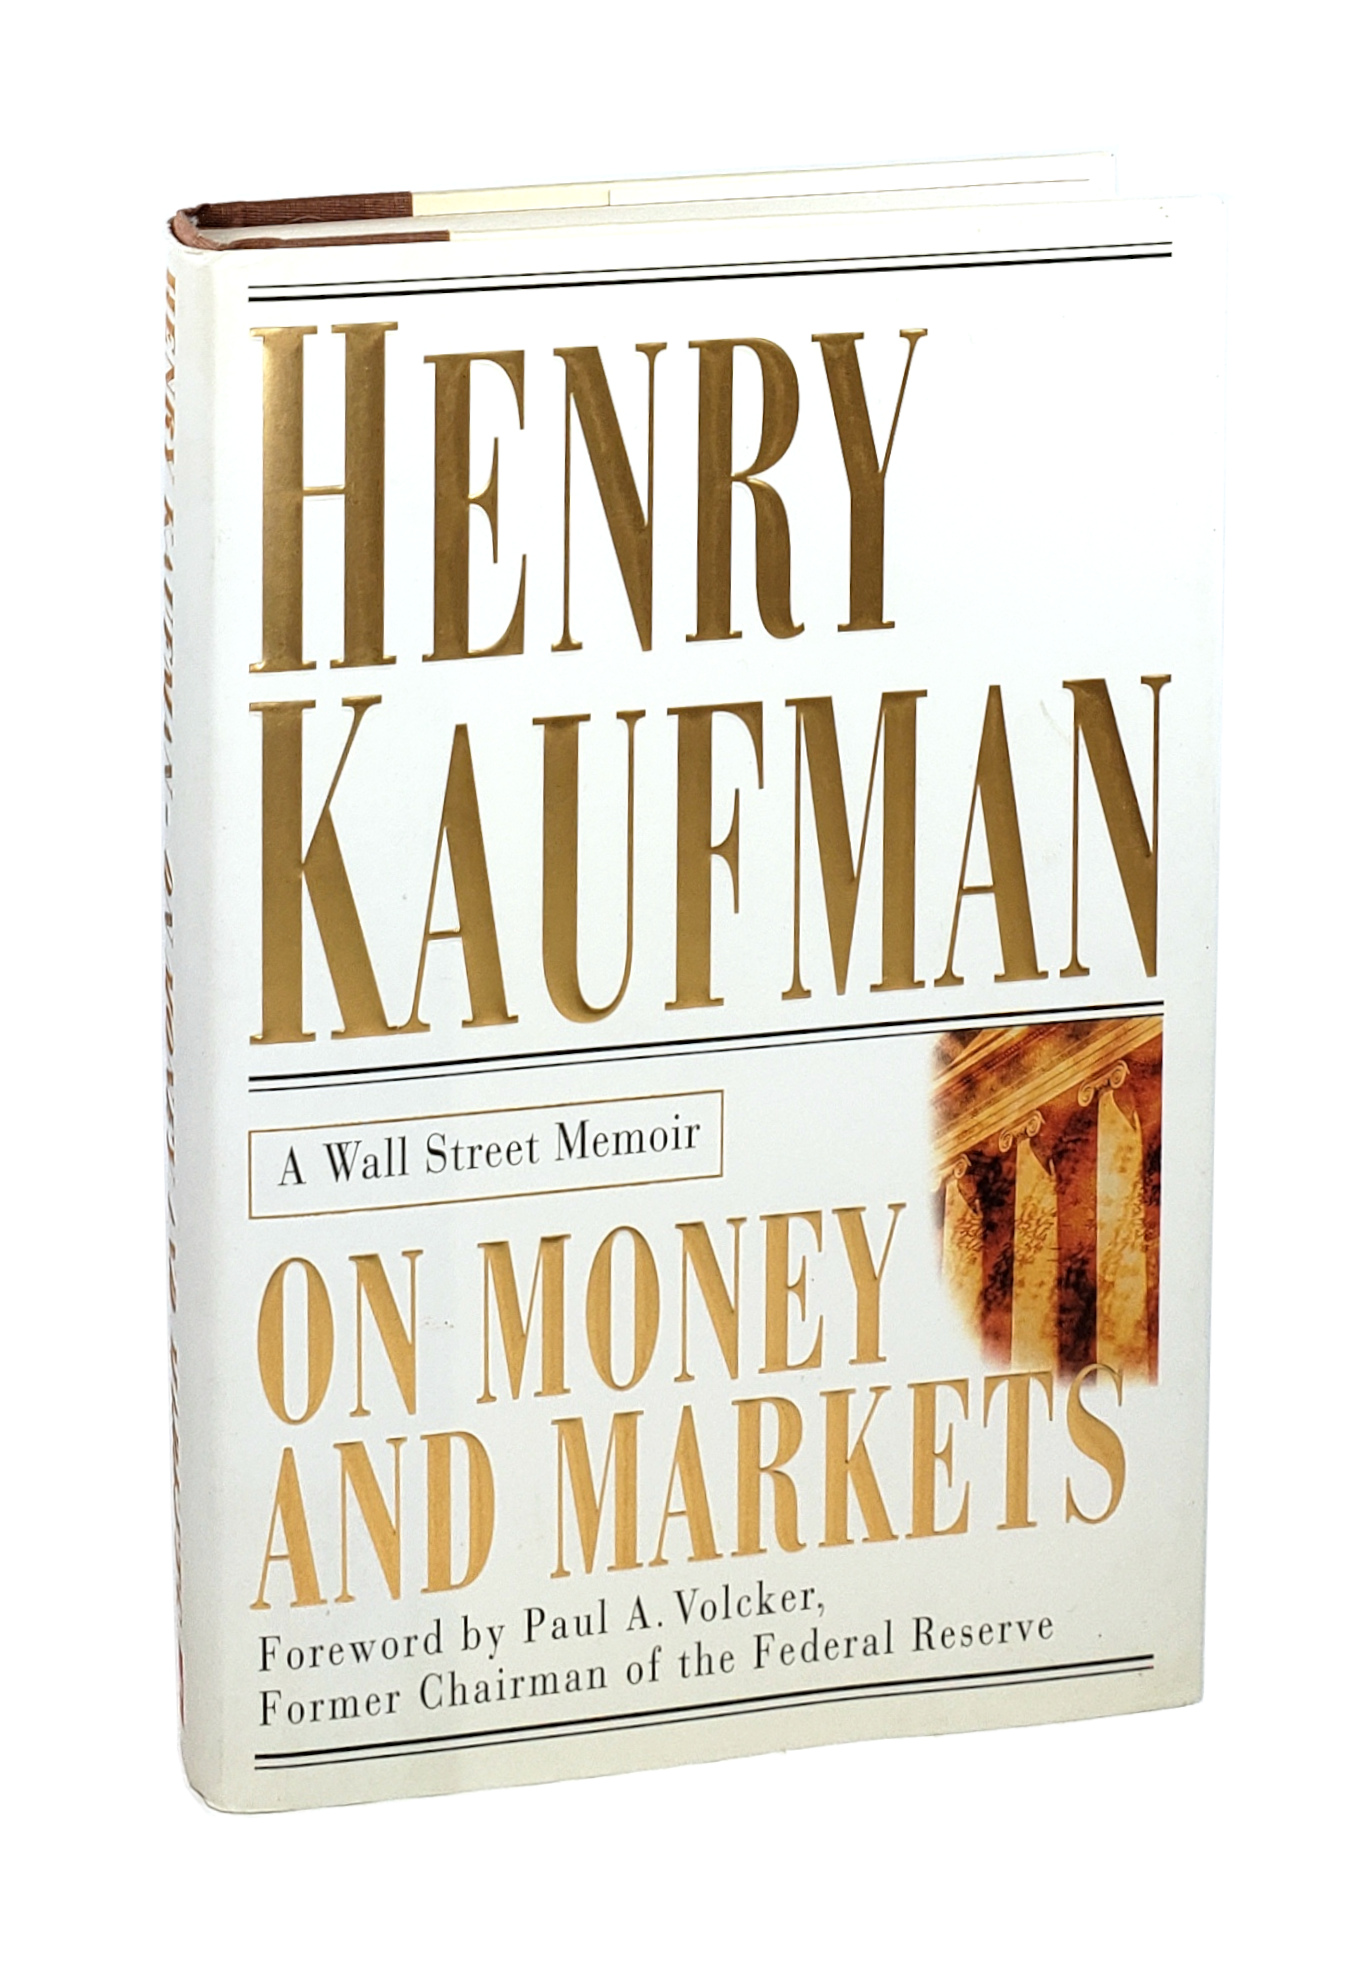 On Money and Markets: A Wall Street Memoir Inscribed and